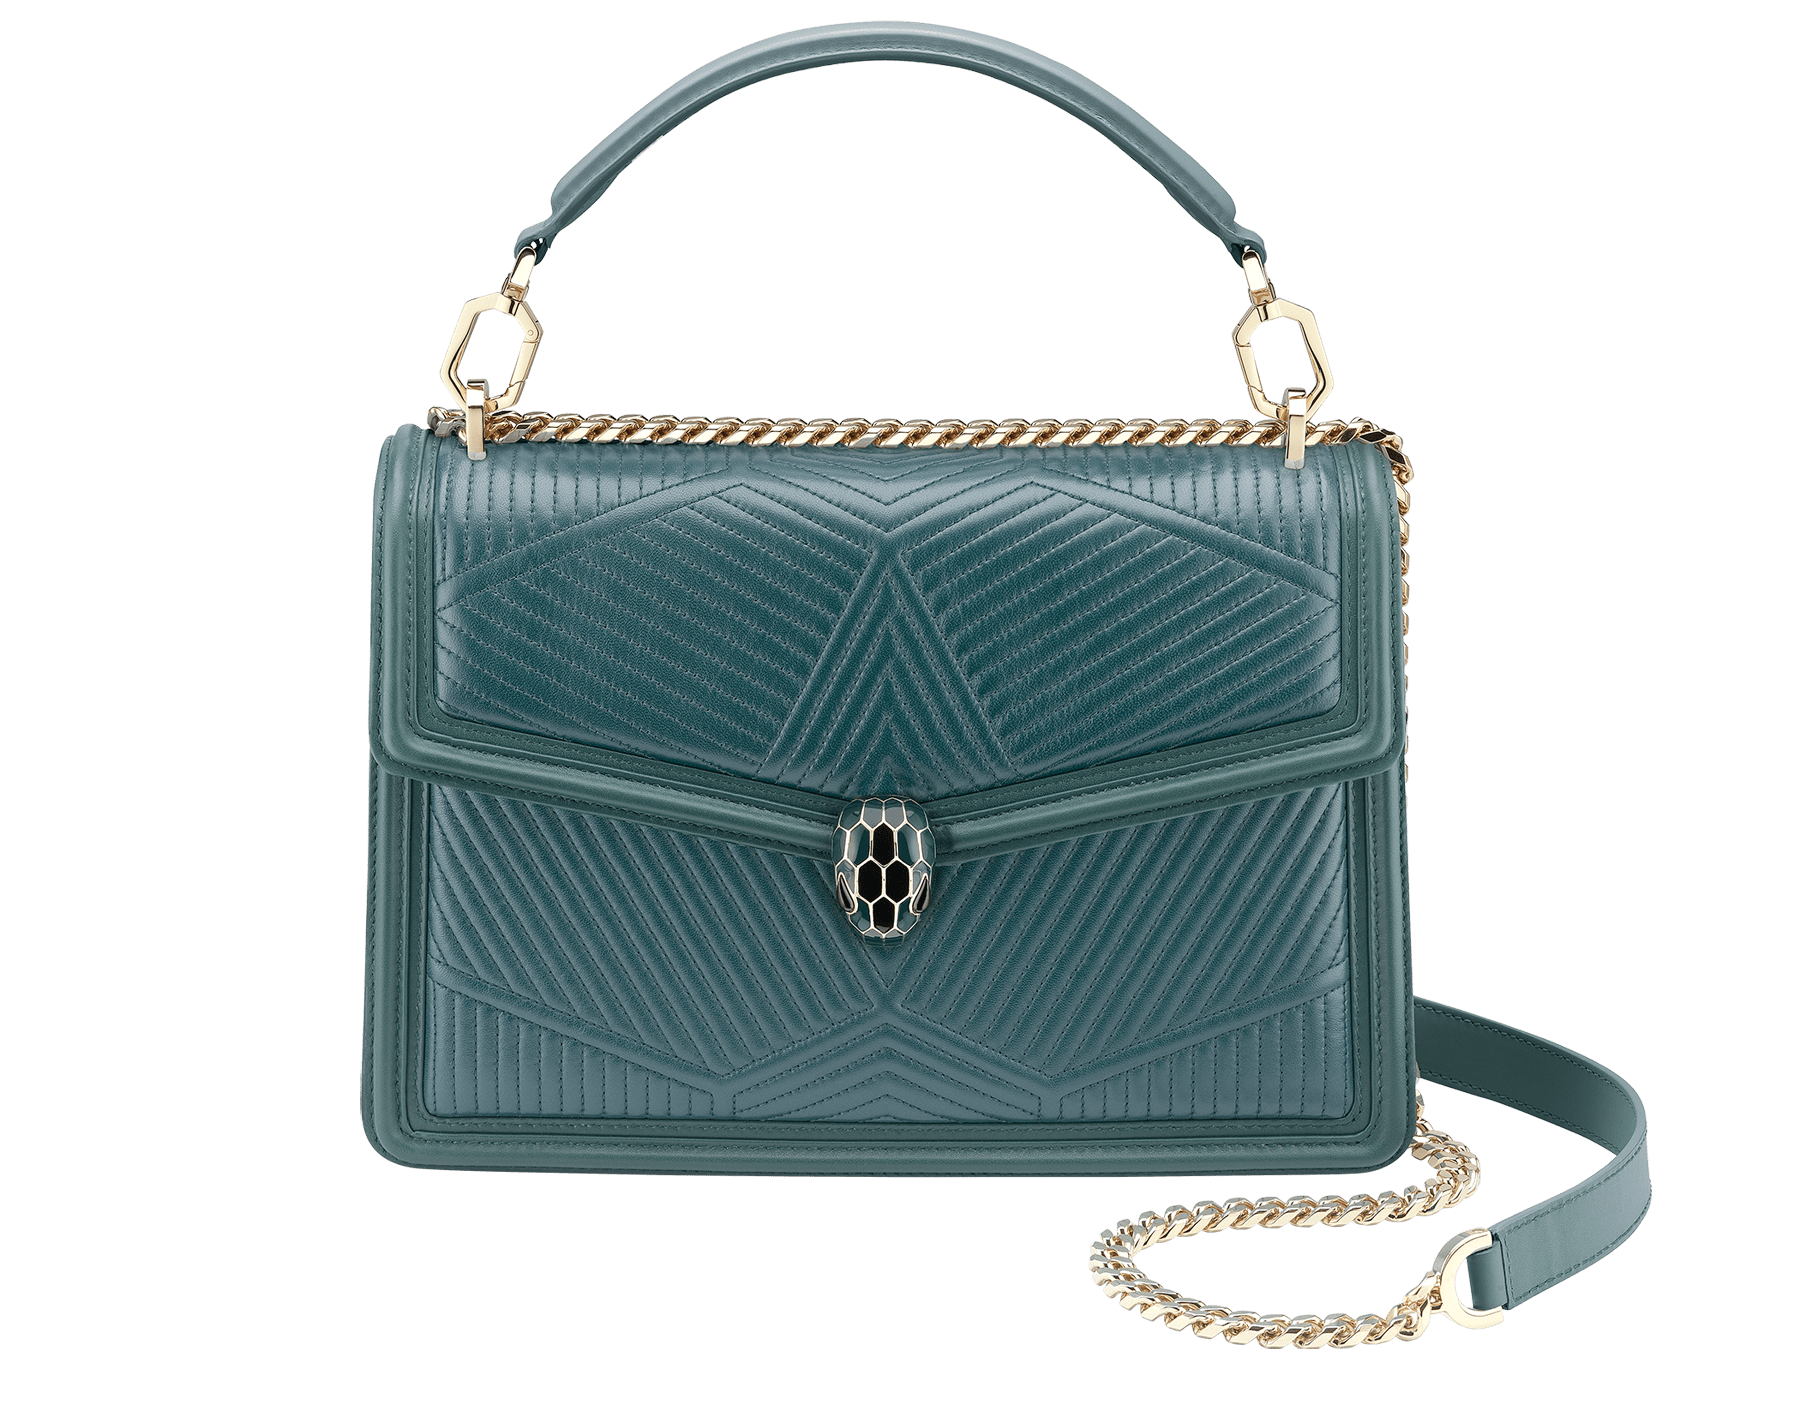 """""""Serpenti Diamond Blast"""" shoulder bag in quilted, agate-white nappa leather with Royal Sapphire blue and black calfskin edging and Royal Sapphire blue nappa leather inner lining. Iconic snakehead closure in light gold-plated brass embellished with black and agate-white enamel and black onyx eyes. 973-FQDa image 1"""